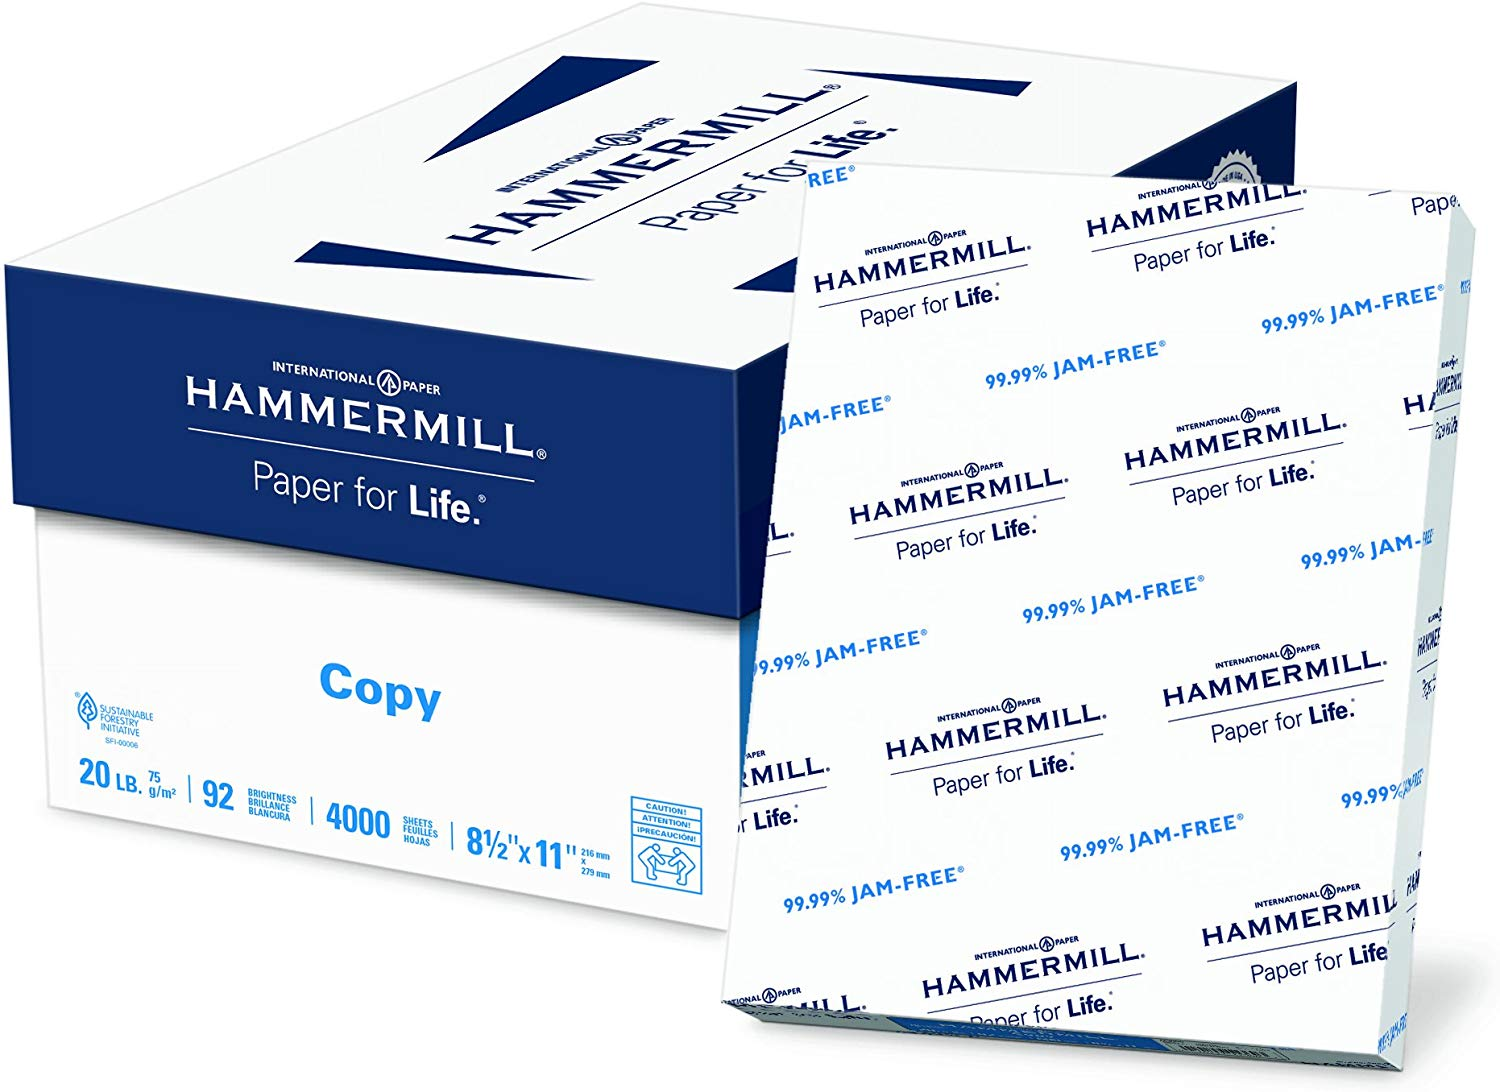 Case of Hammermill Paper / 4,000 Sheets only $23.99! (was $36.99)